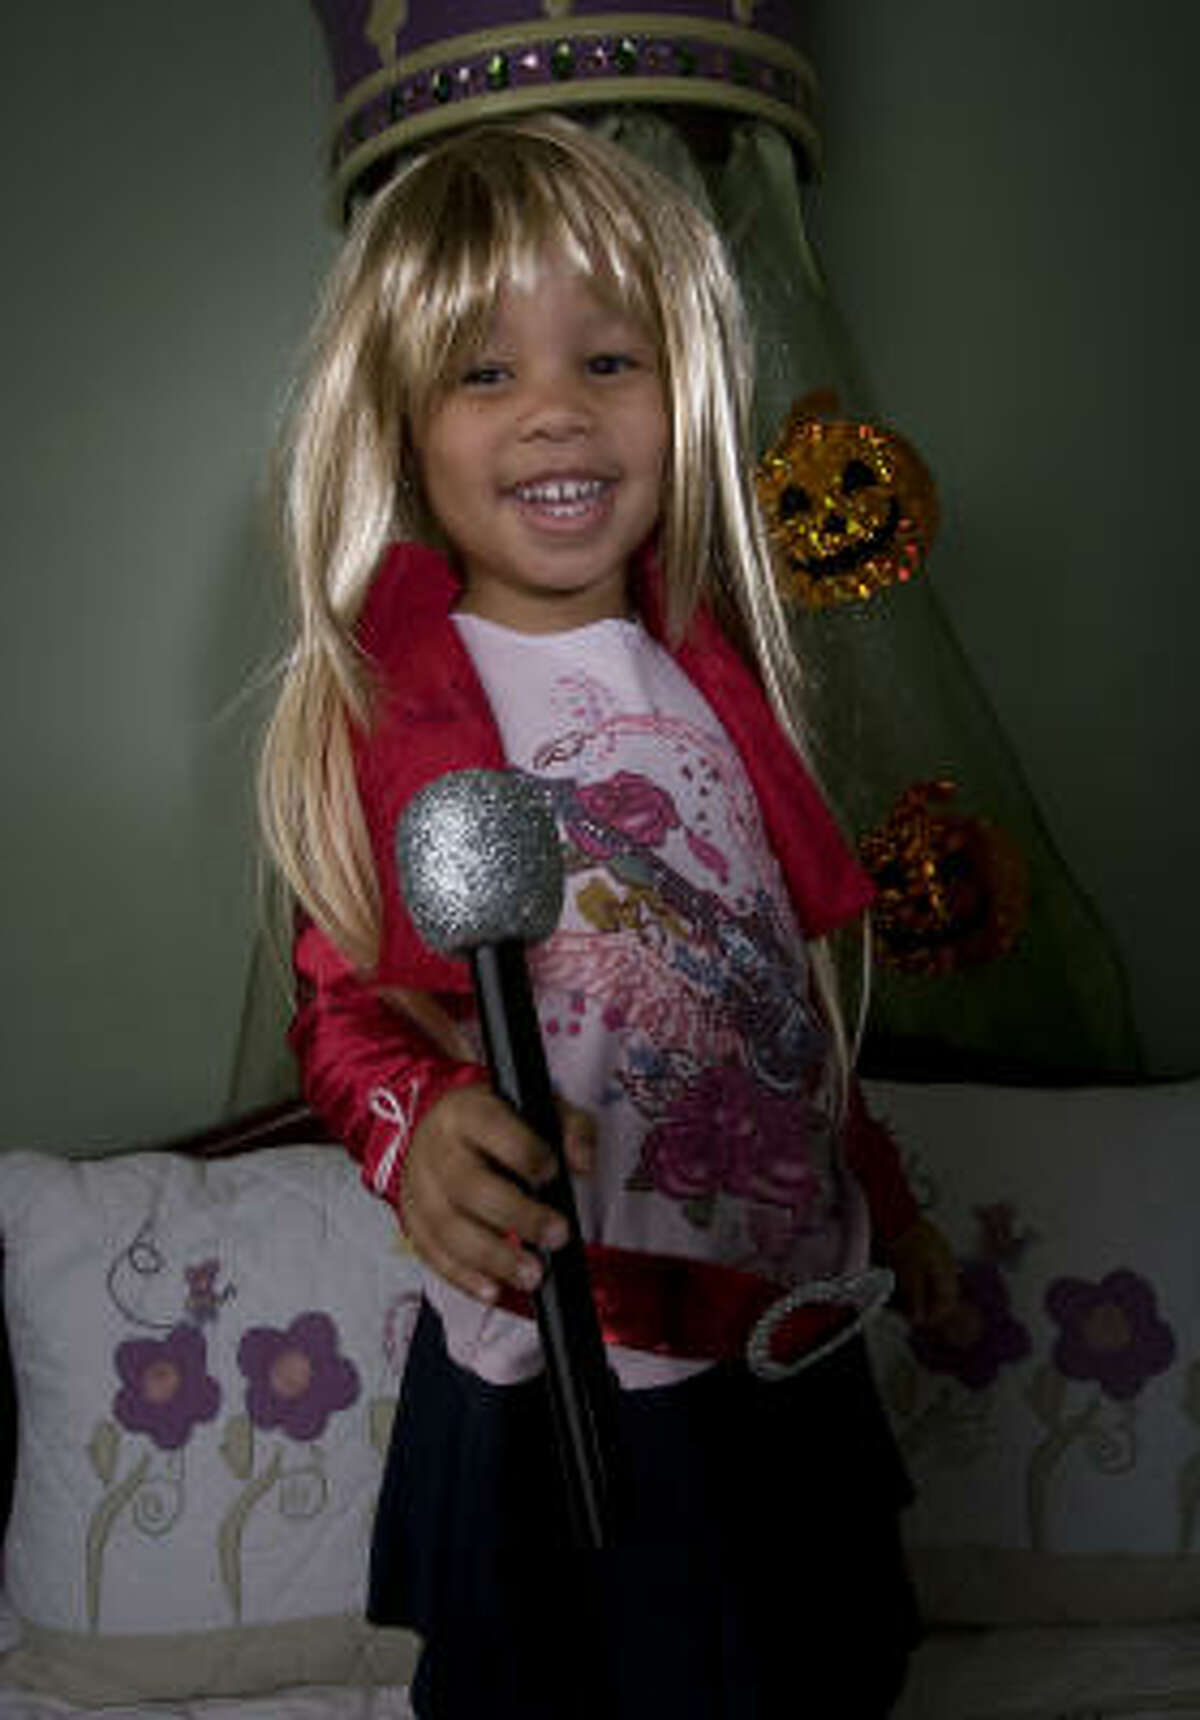 Auriel Smith, 3, as Hannah Montana